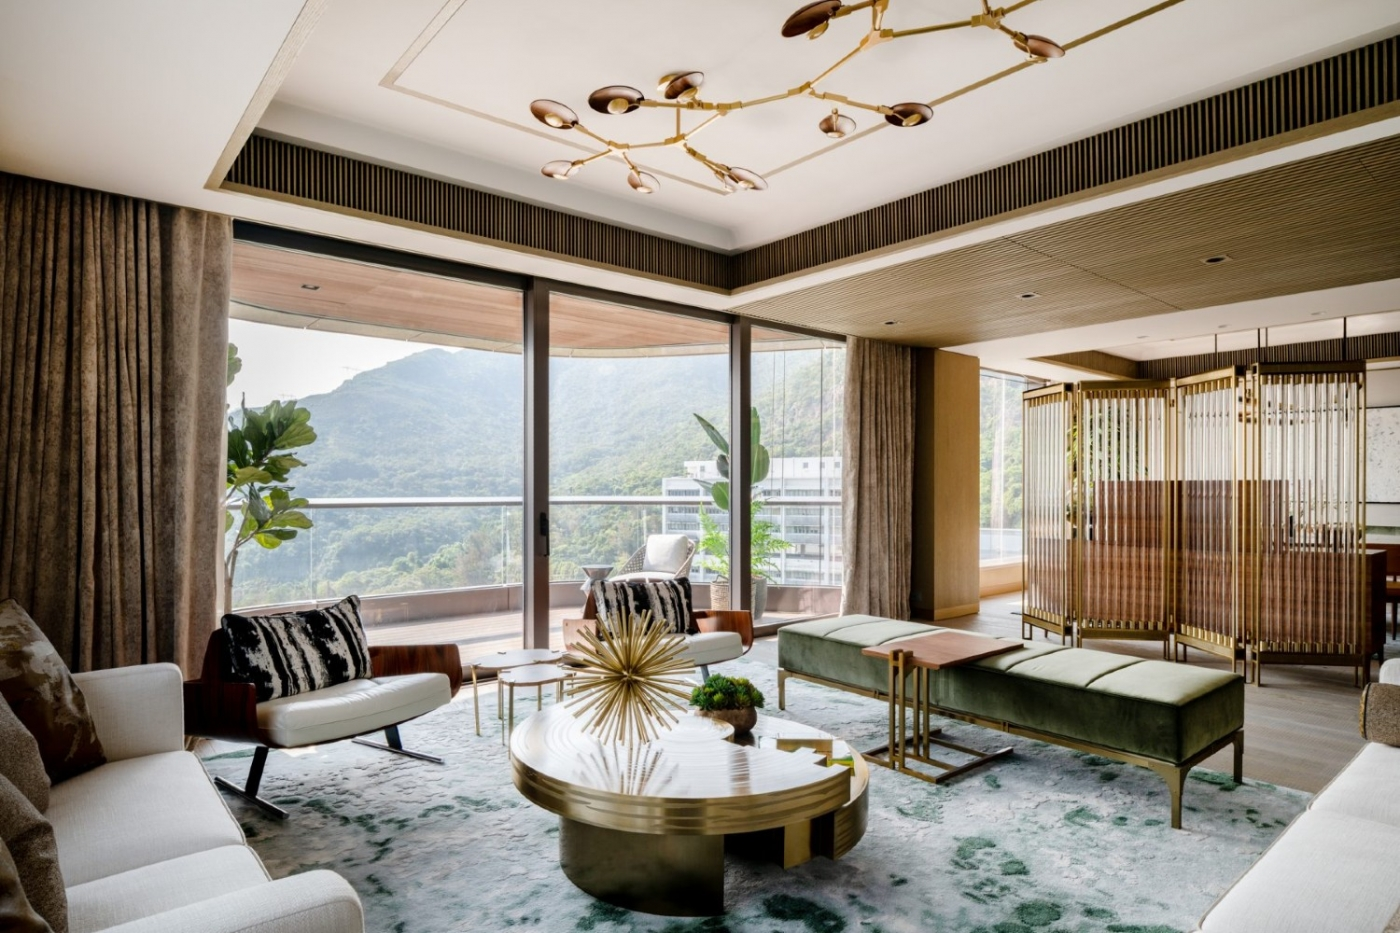 Discover The Best And Most Inspiring Interior Design Projects In Hong Kong ft interior design project Discover The Best And Most Inspiring Interior Design Projects In Hong Kong Discover The Best And Most Inspiring Interior Design Projects In Hong Kong ft 1400x933